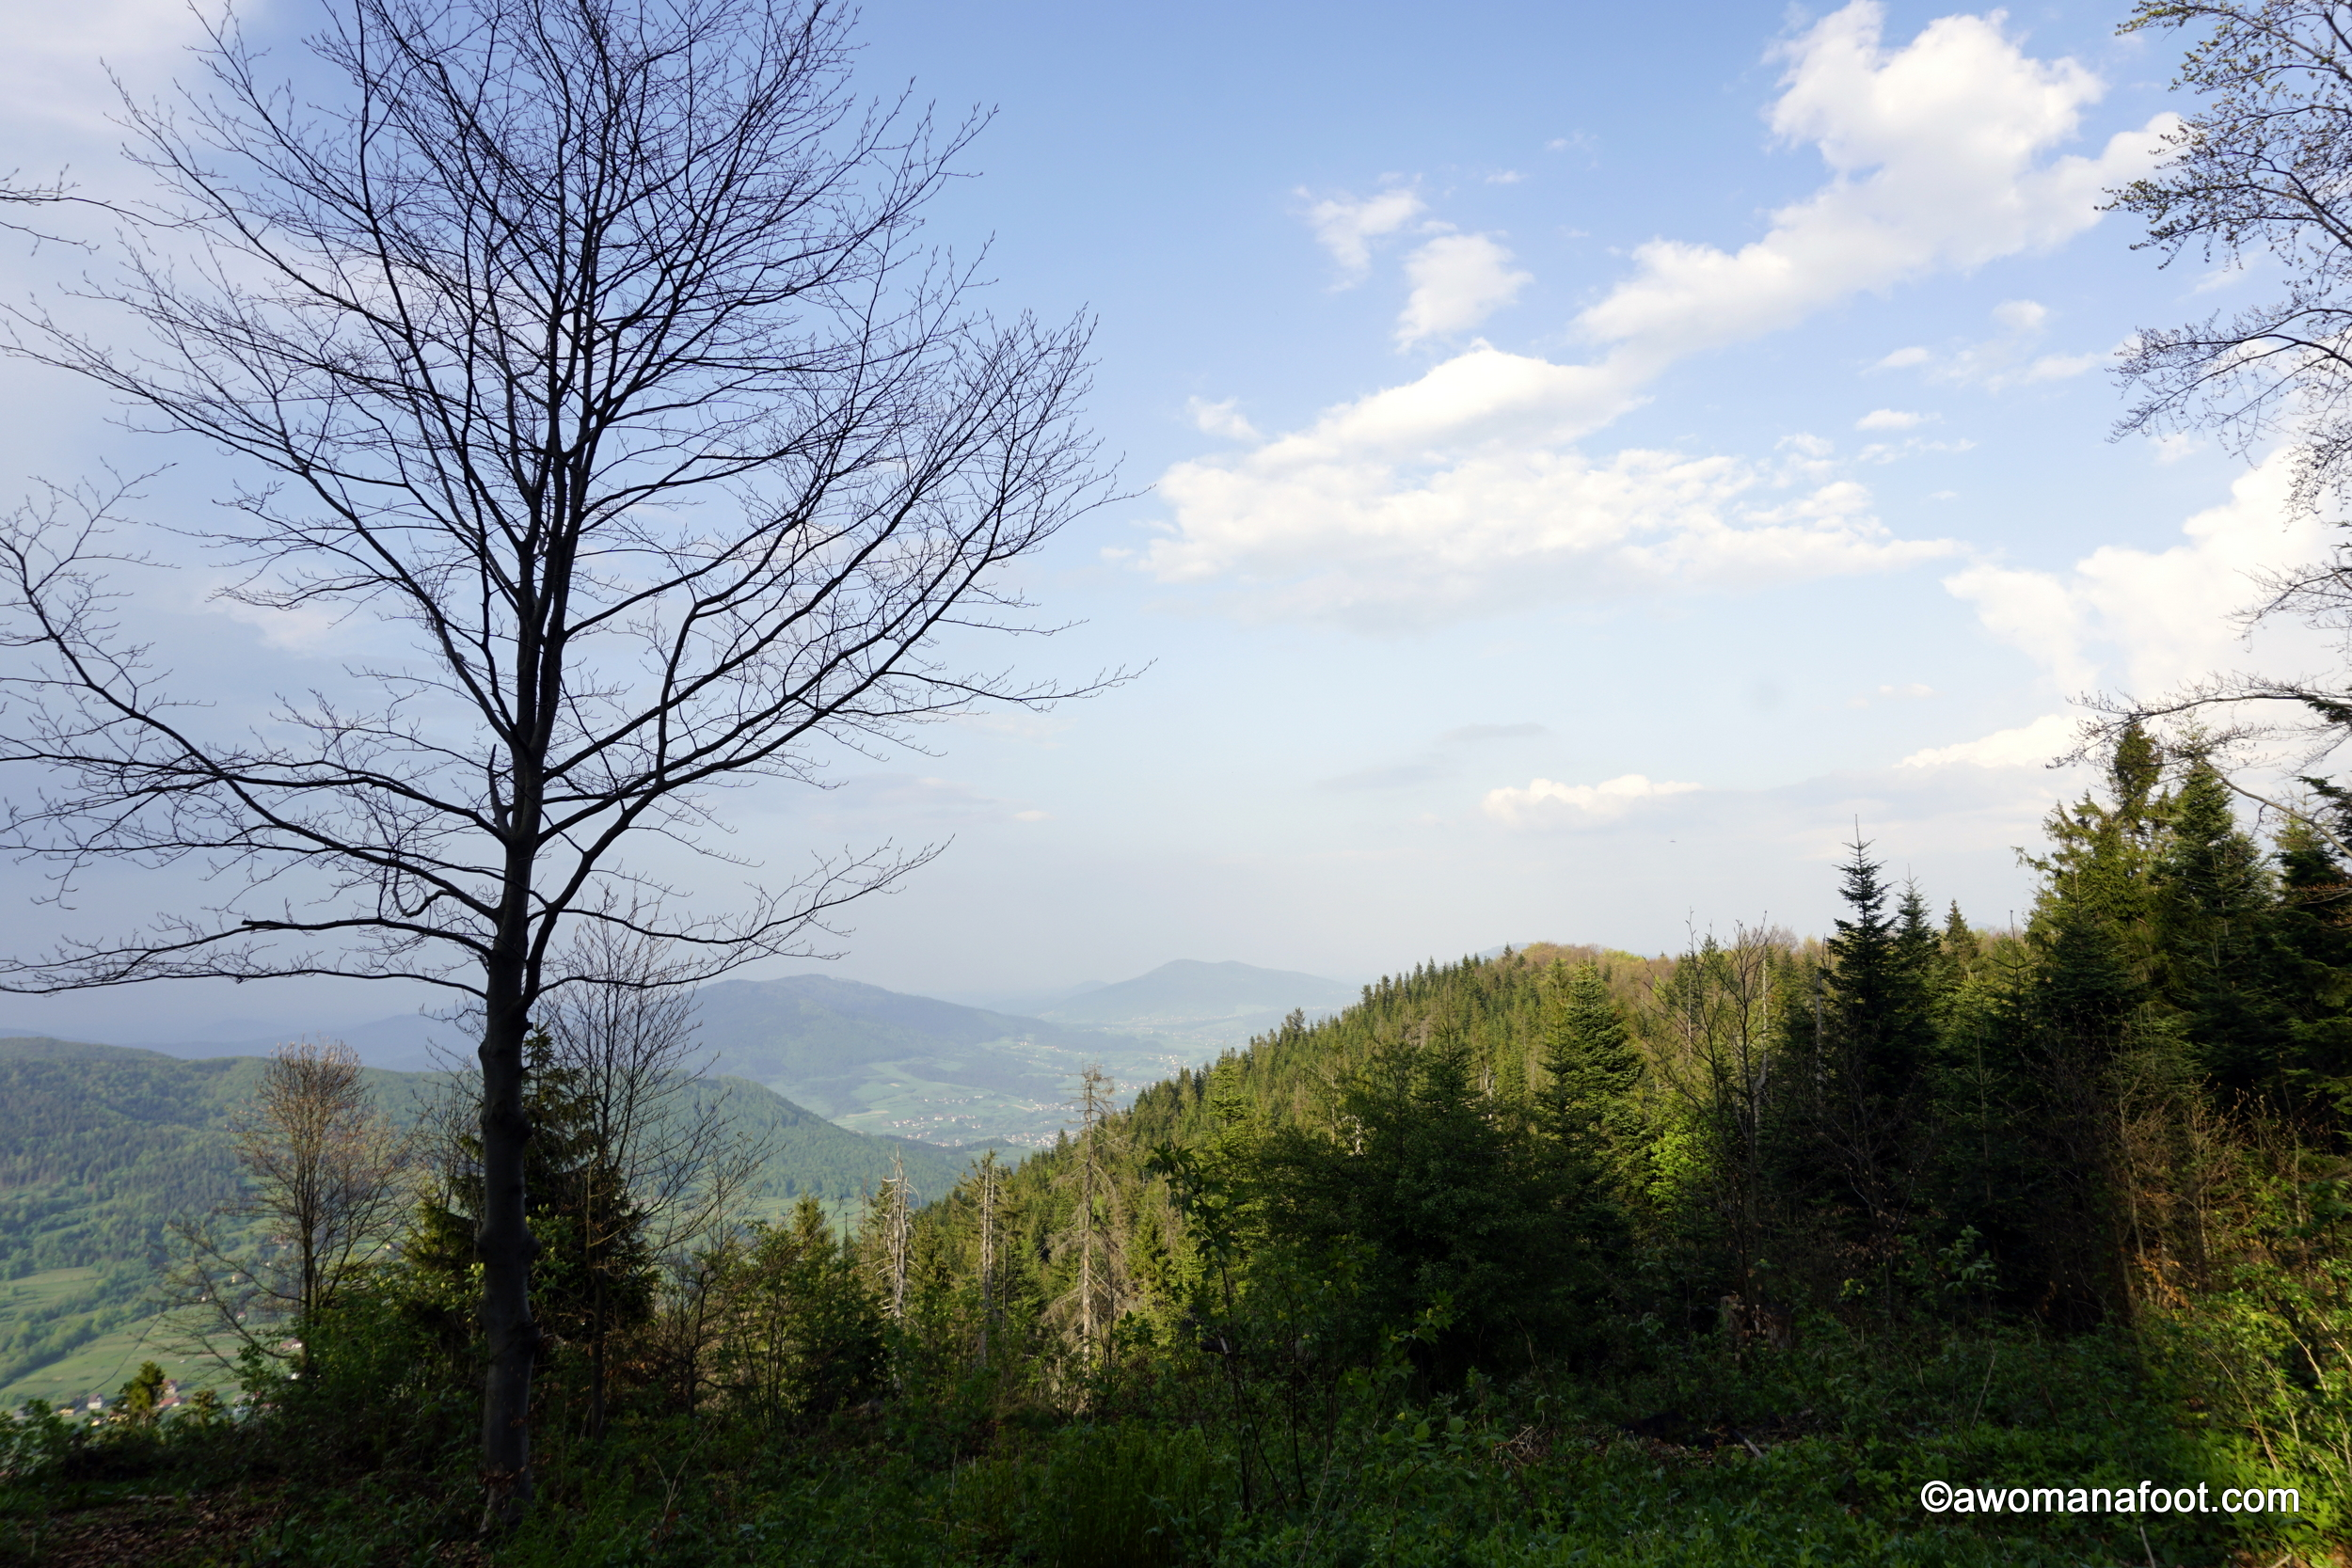 Are you interested in unusual hiking destinations? Check what Beskid Wyspowy (the Island Beskid Mountains) is all about! Poland is an excellent place for all hikers and adventure seekers! Learn more about hiking in Poland @ AWOMANAFOOT.COM. Hiking trails in Europe | Long-distance hiking | female and solo hiking destinations | women hikers | #hiking #Poland #trail #Beskid #Mountains #Europe #trekking #adventure #trekking #solo #femalehiker